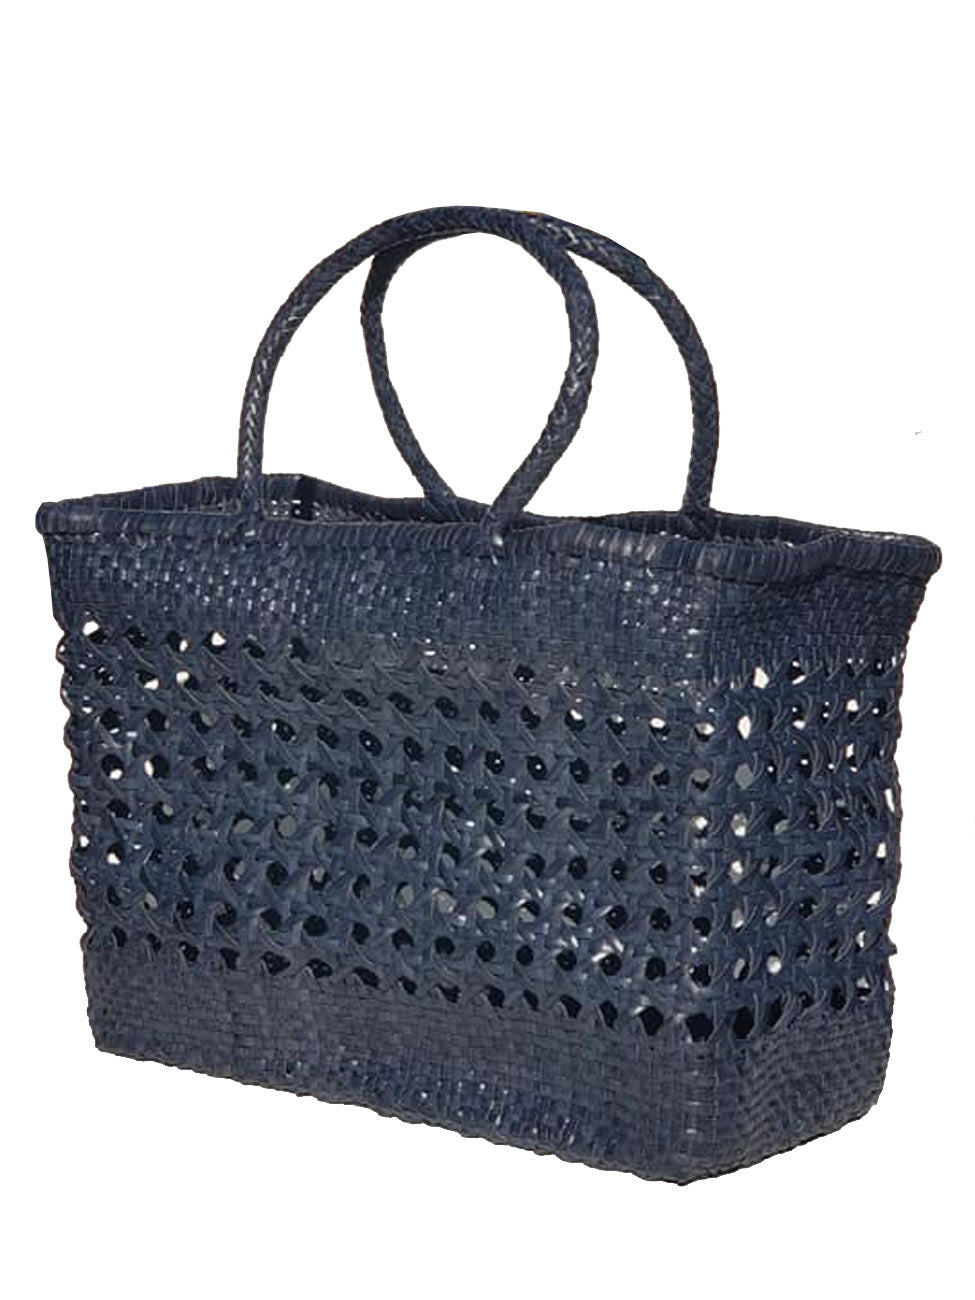 Woven Leather Large Tote Bag Wicker